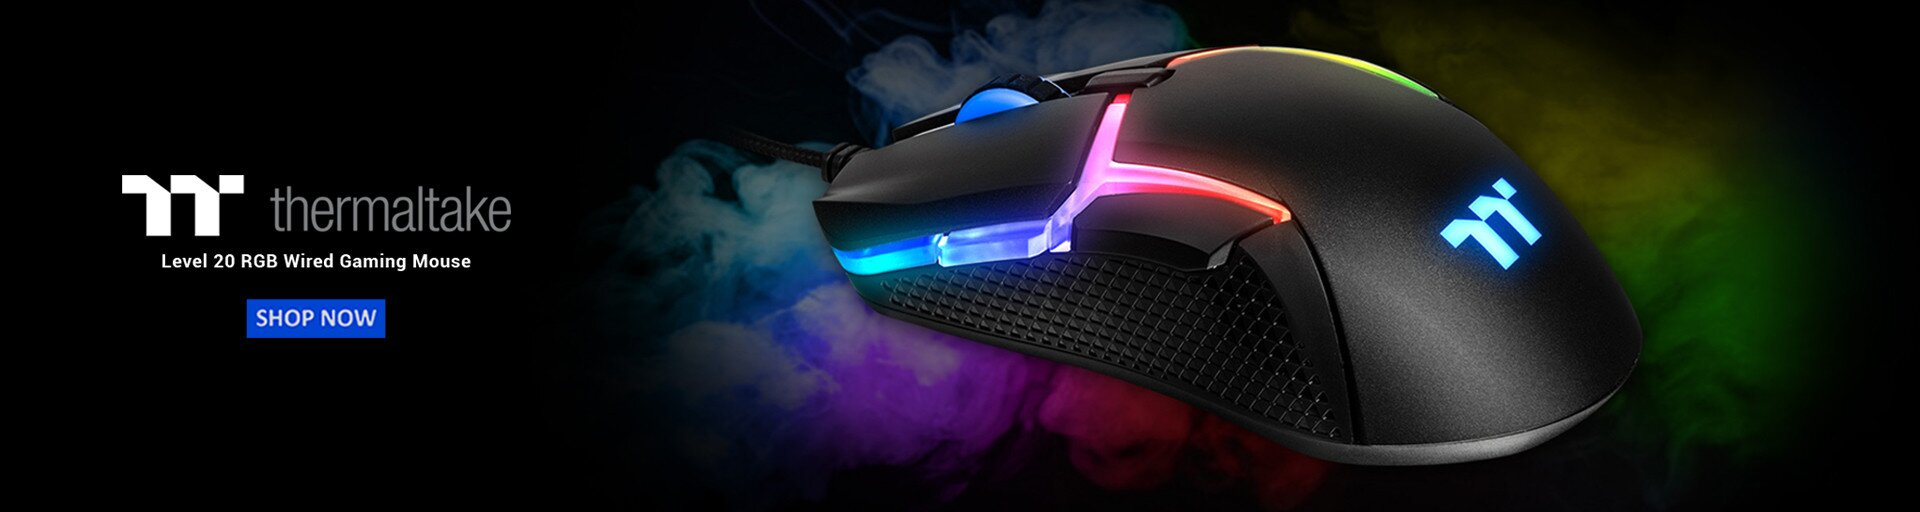 Thermaltake Level 20 RGB Wired Gaming Mouse